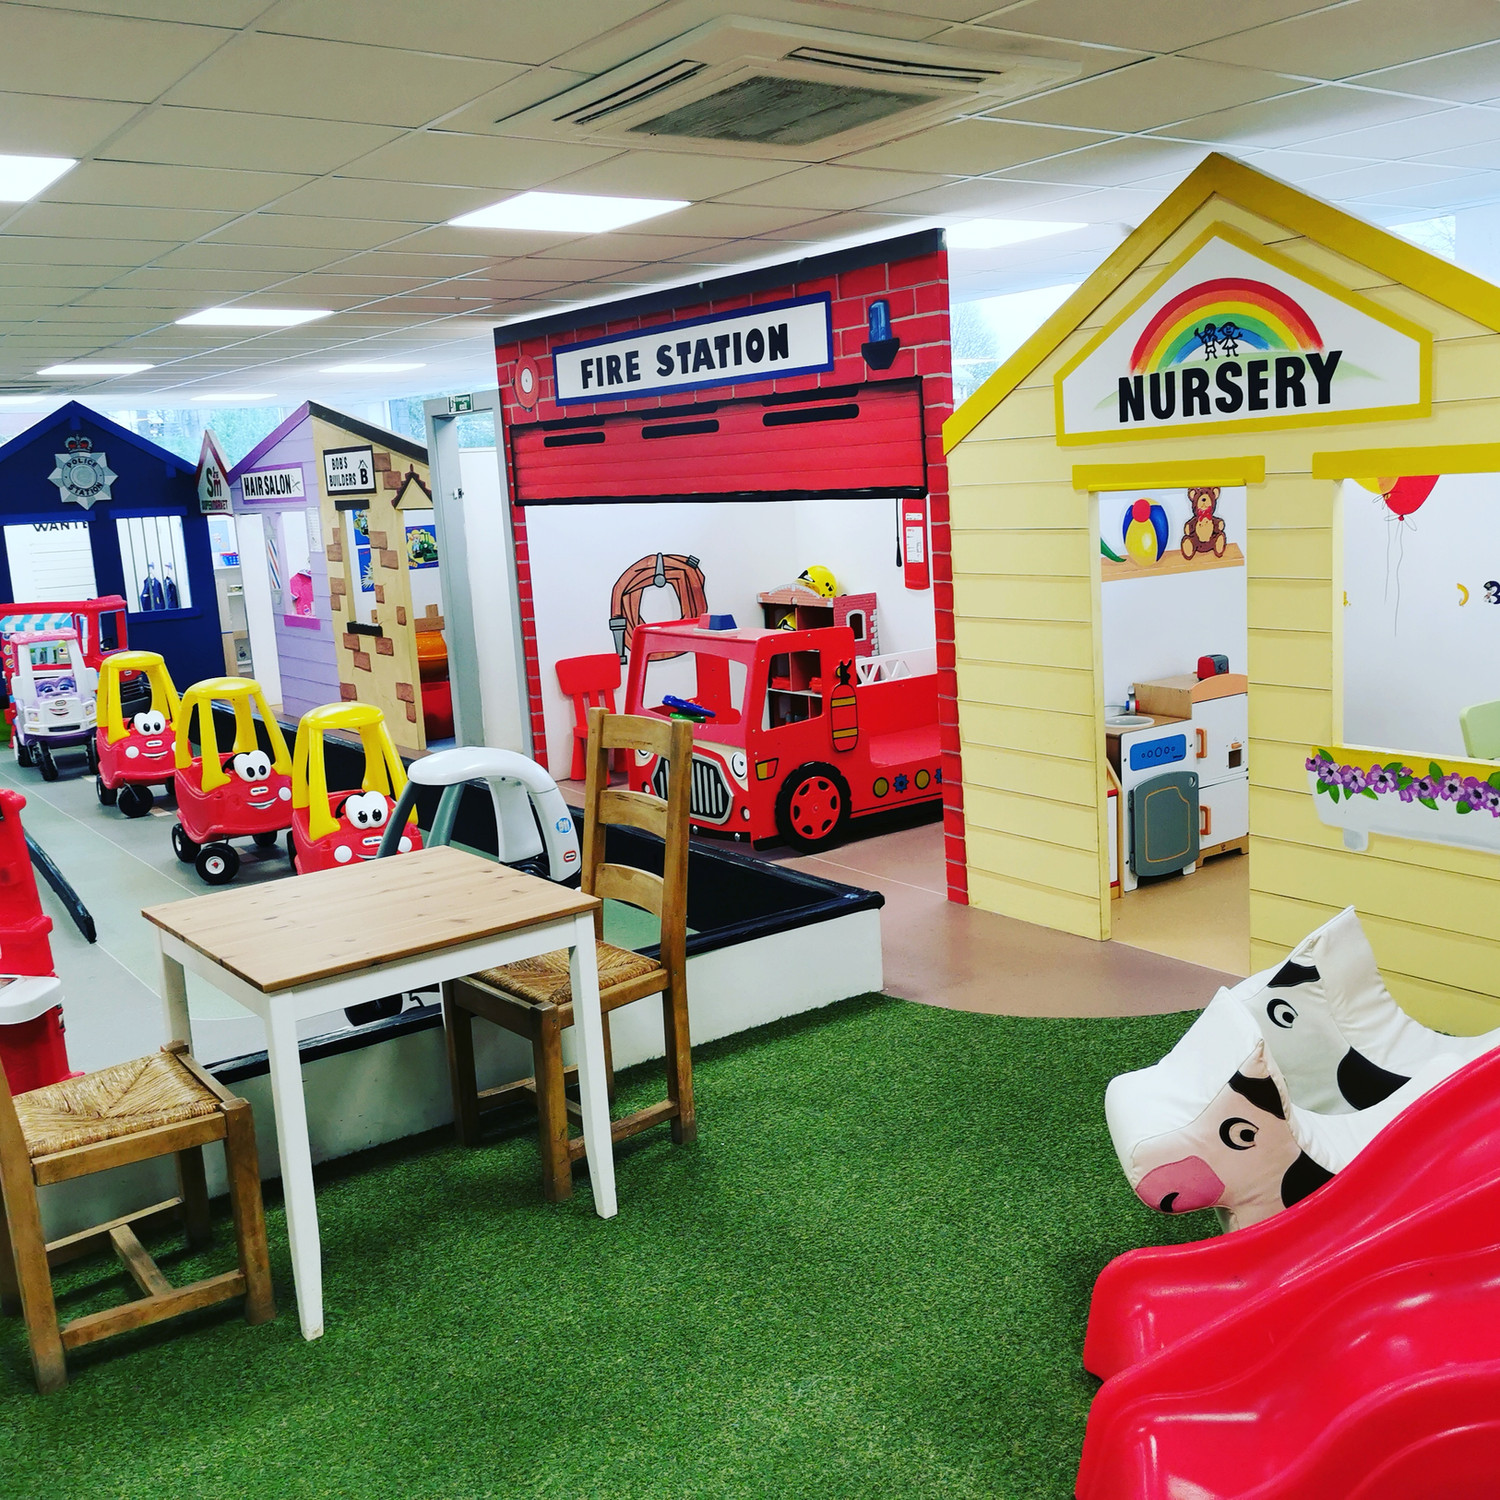 Role play special offer £3.75